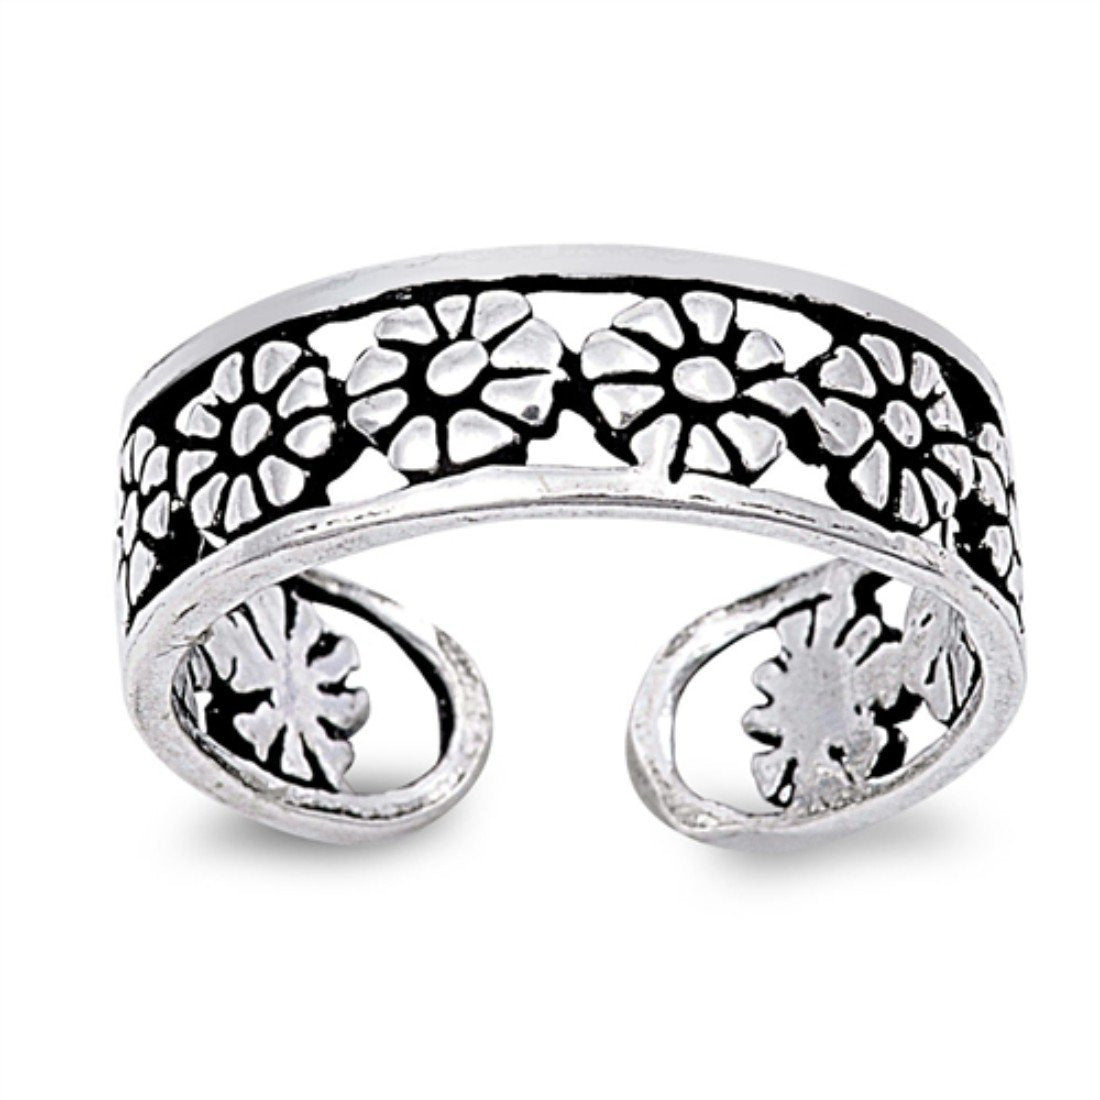 Flower Silver Toe Ring Adjustable Band 925 Sterling Silver For Women (5mm)